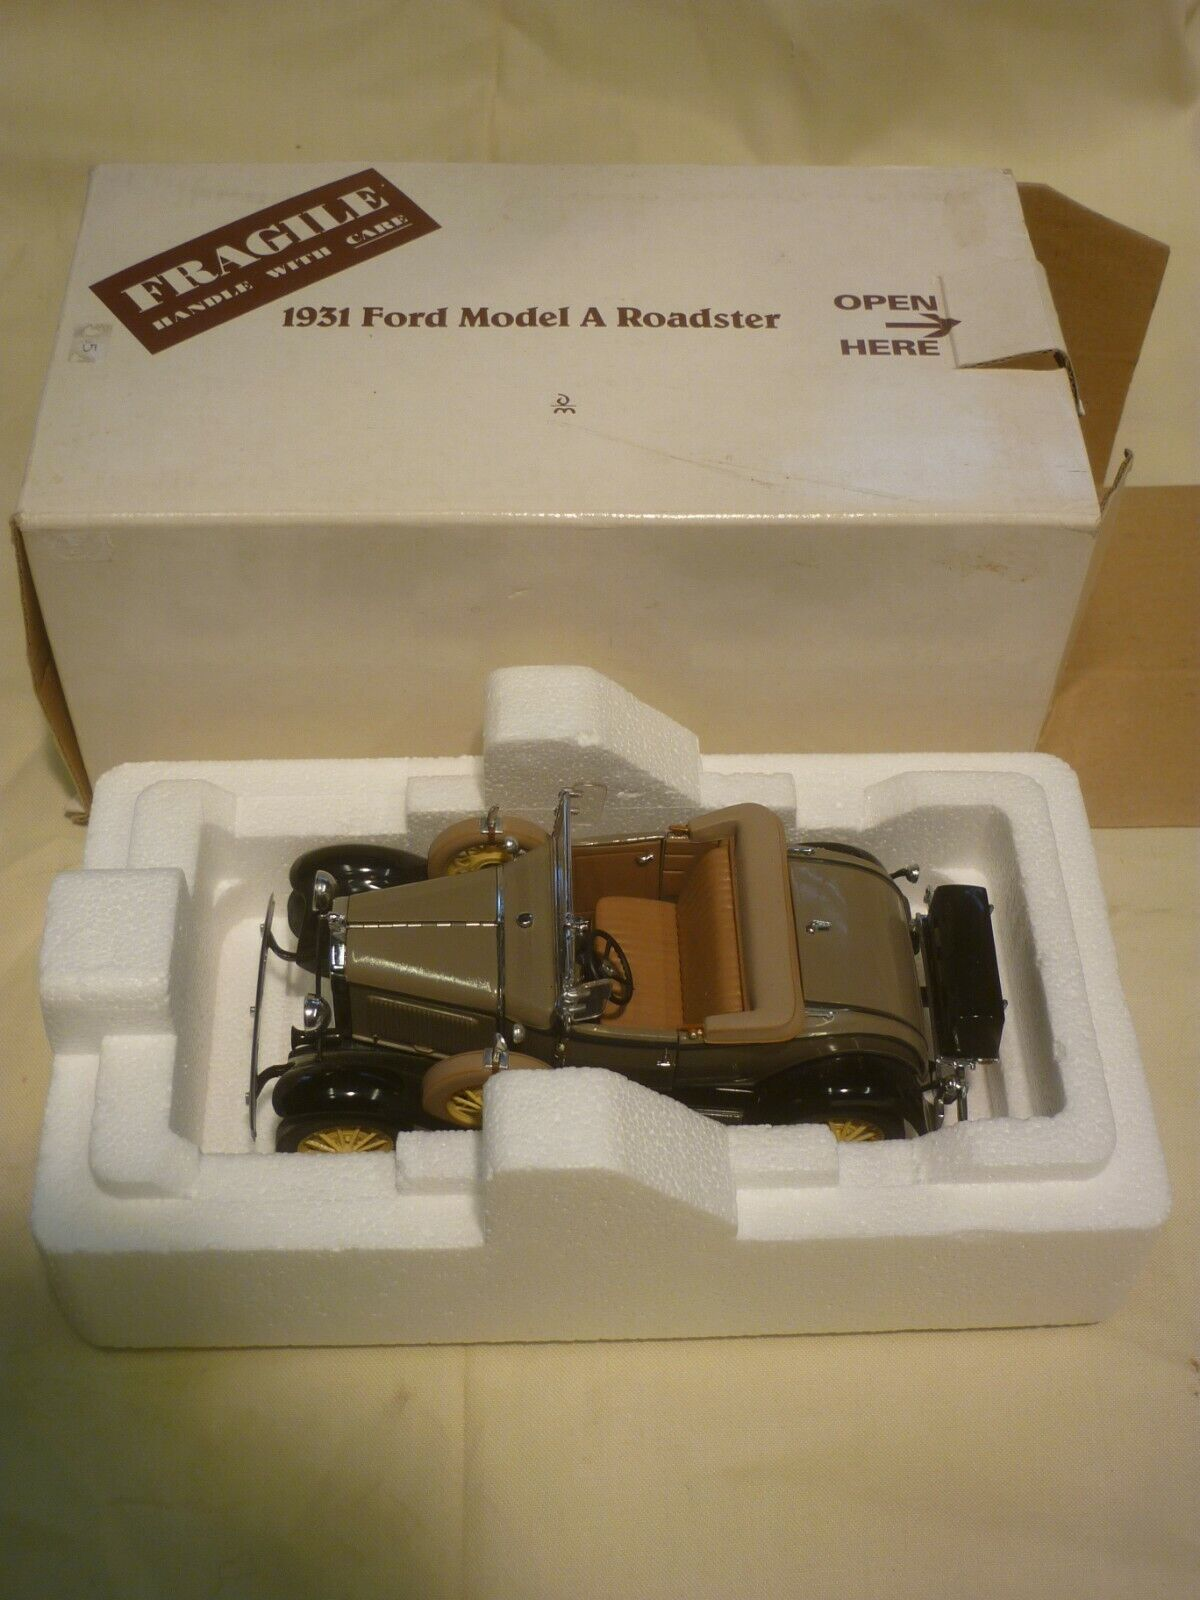 A Pre-owned Danbury mint  1931 Ford model A Roadster,  Boxed,